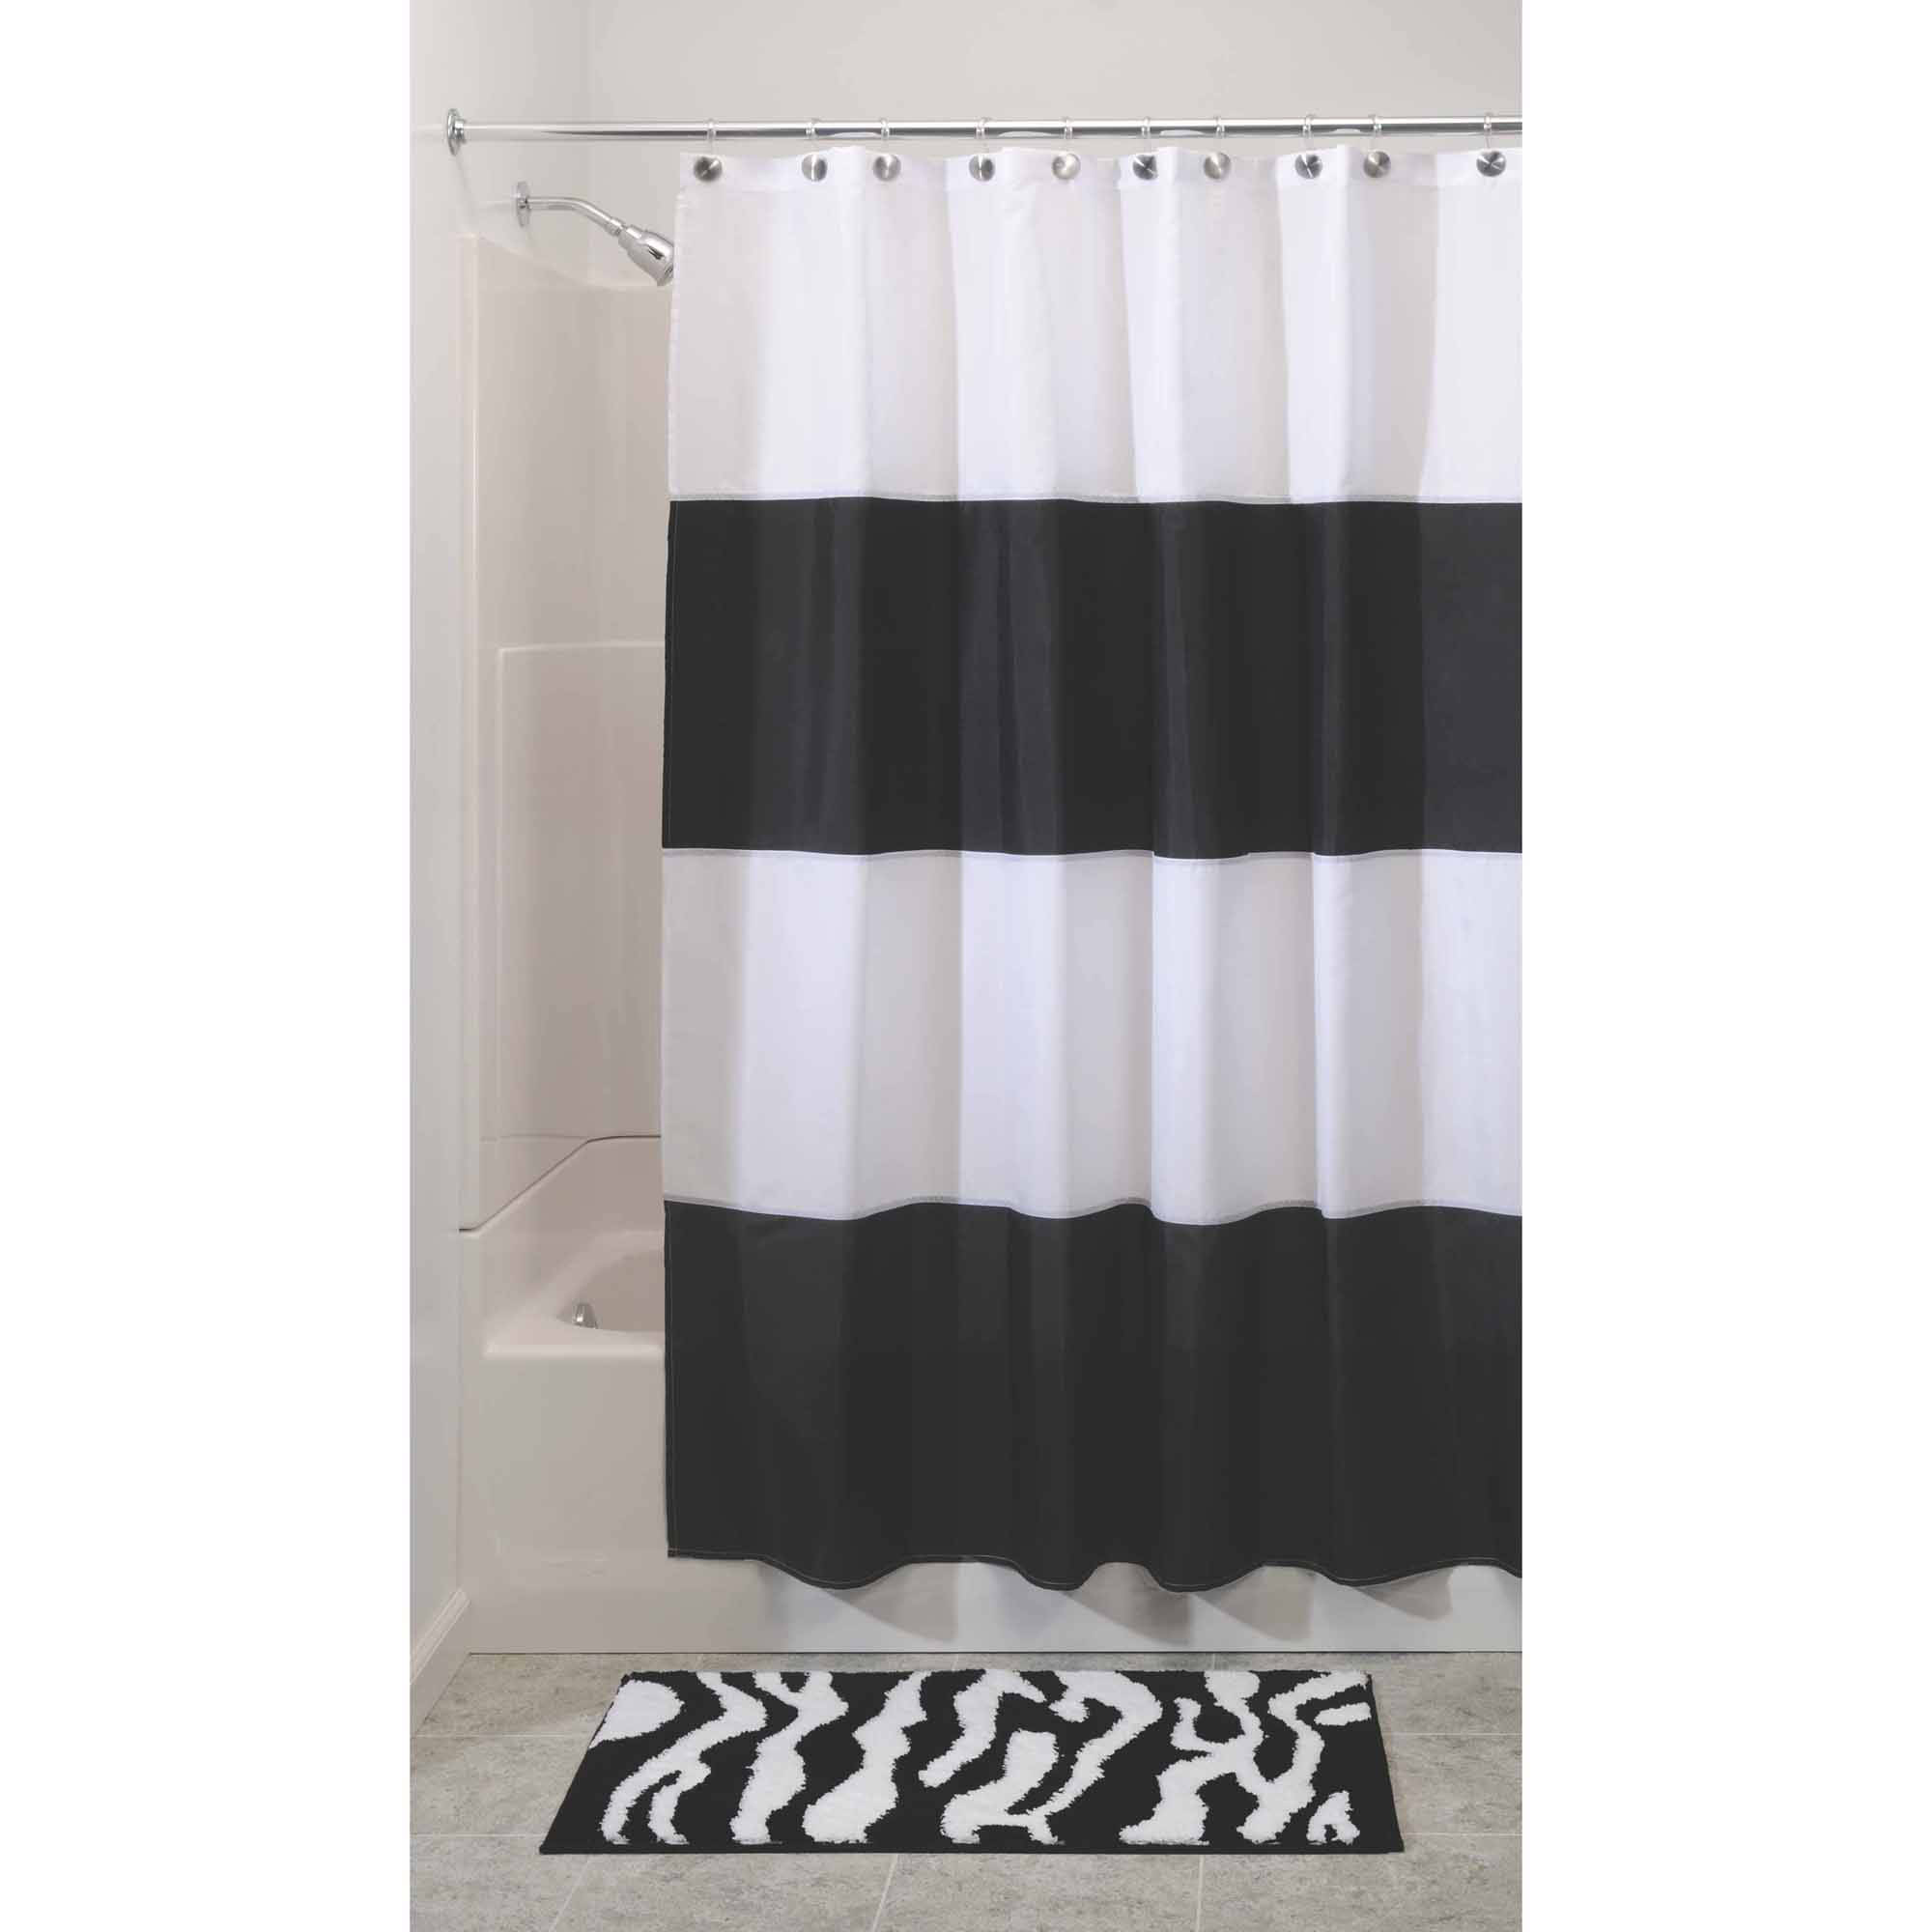 InterDesign Zeno Mildew-Free Water-Repellent Shower Curtain